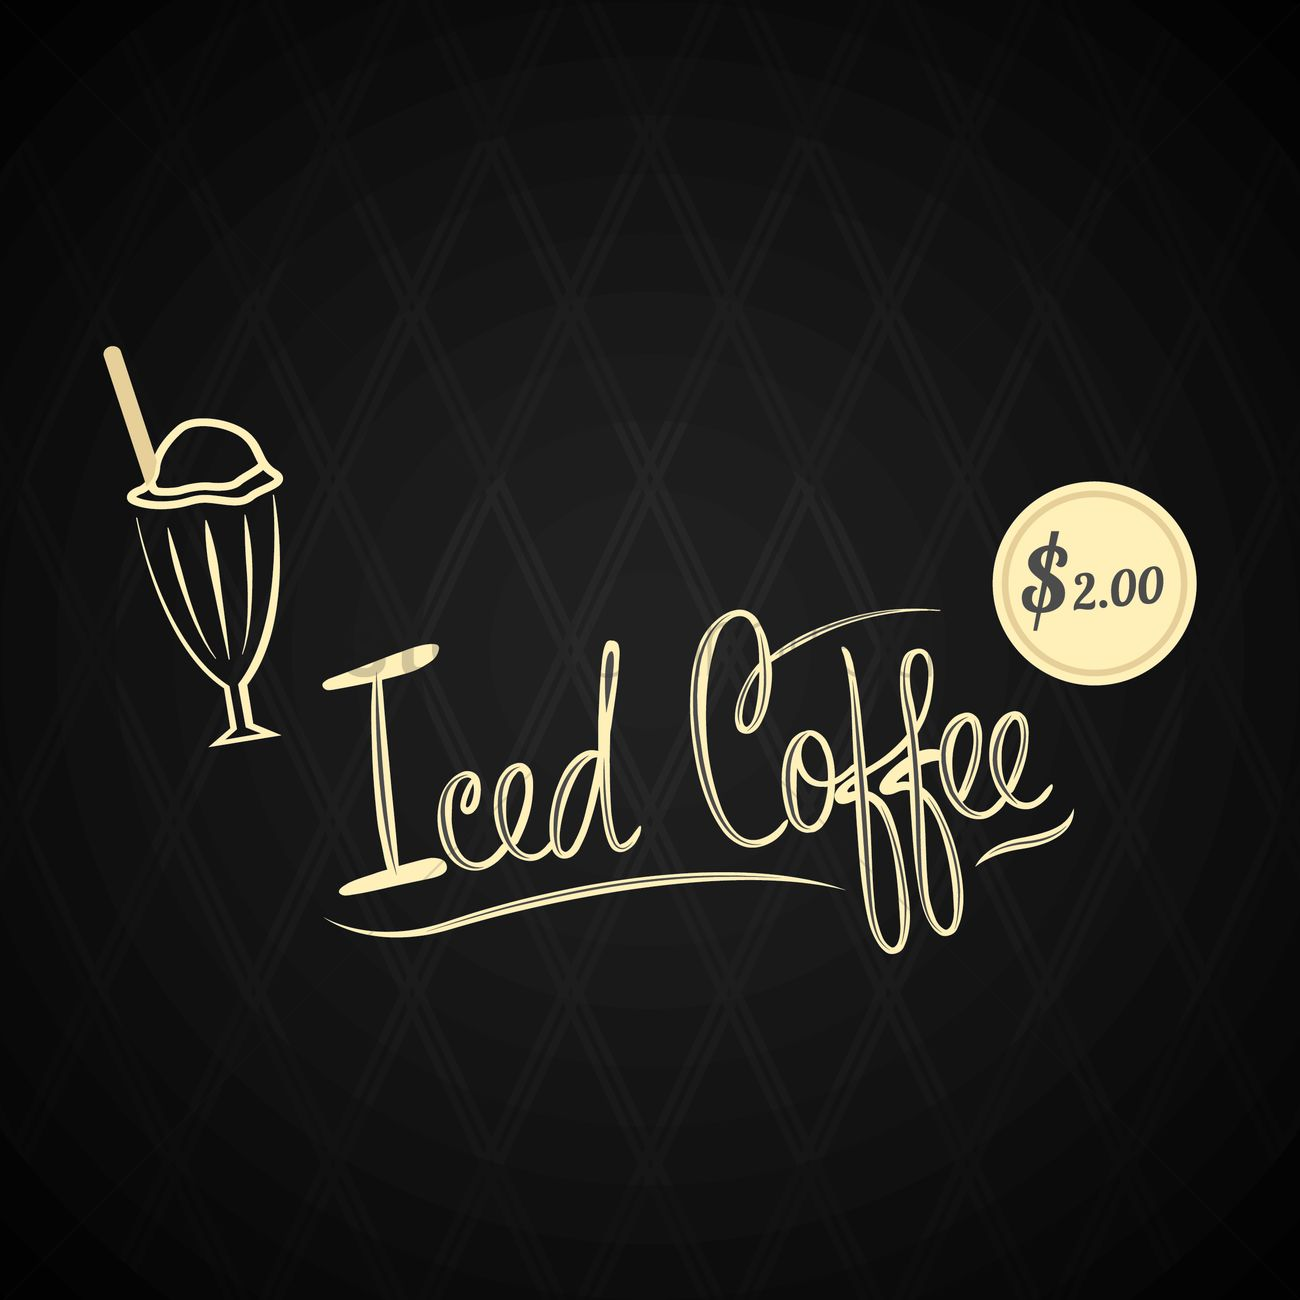 iced coffee menu design vector image 1705962 stockunlimited